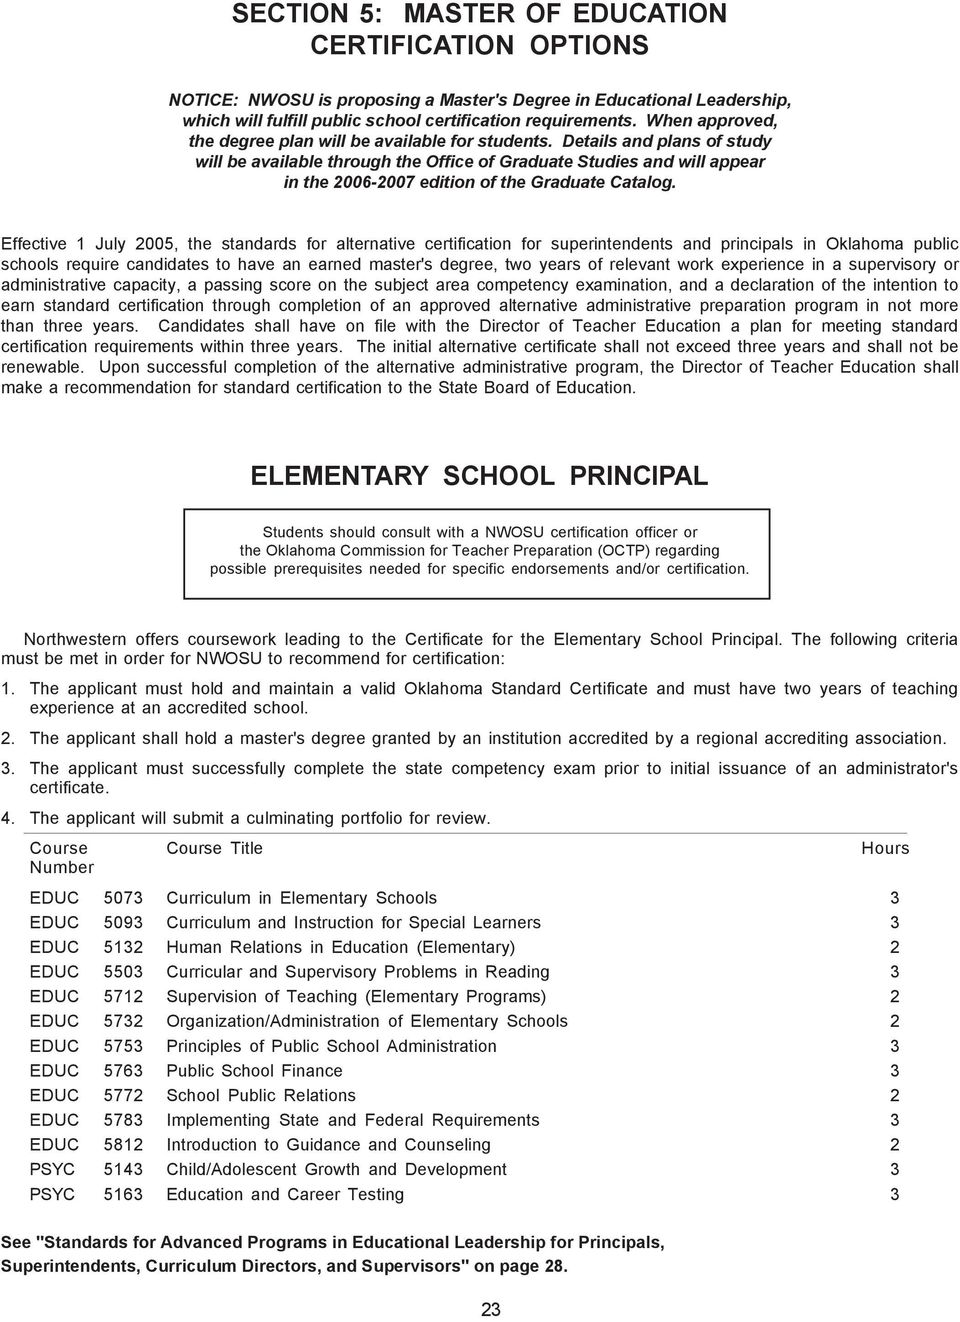 Section 5 Master Of Education Certification Options Elementary